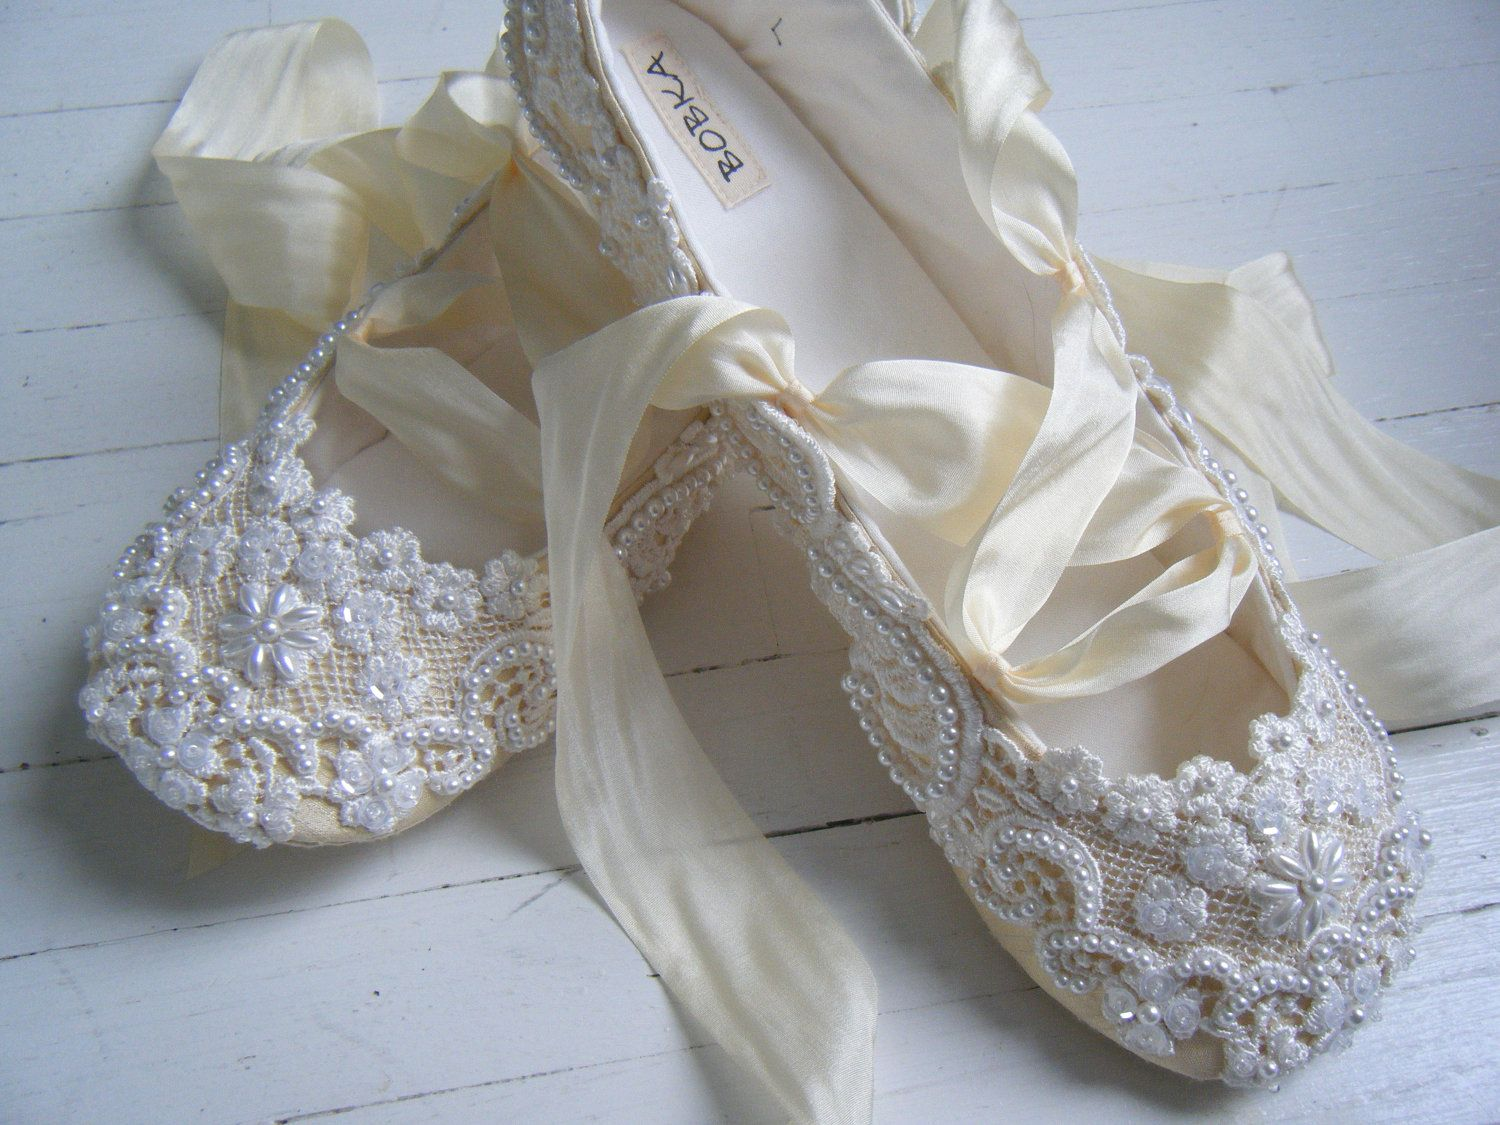 17 Best images about Bridal Shoes on Pinterest | Lace shoes ...